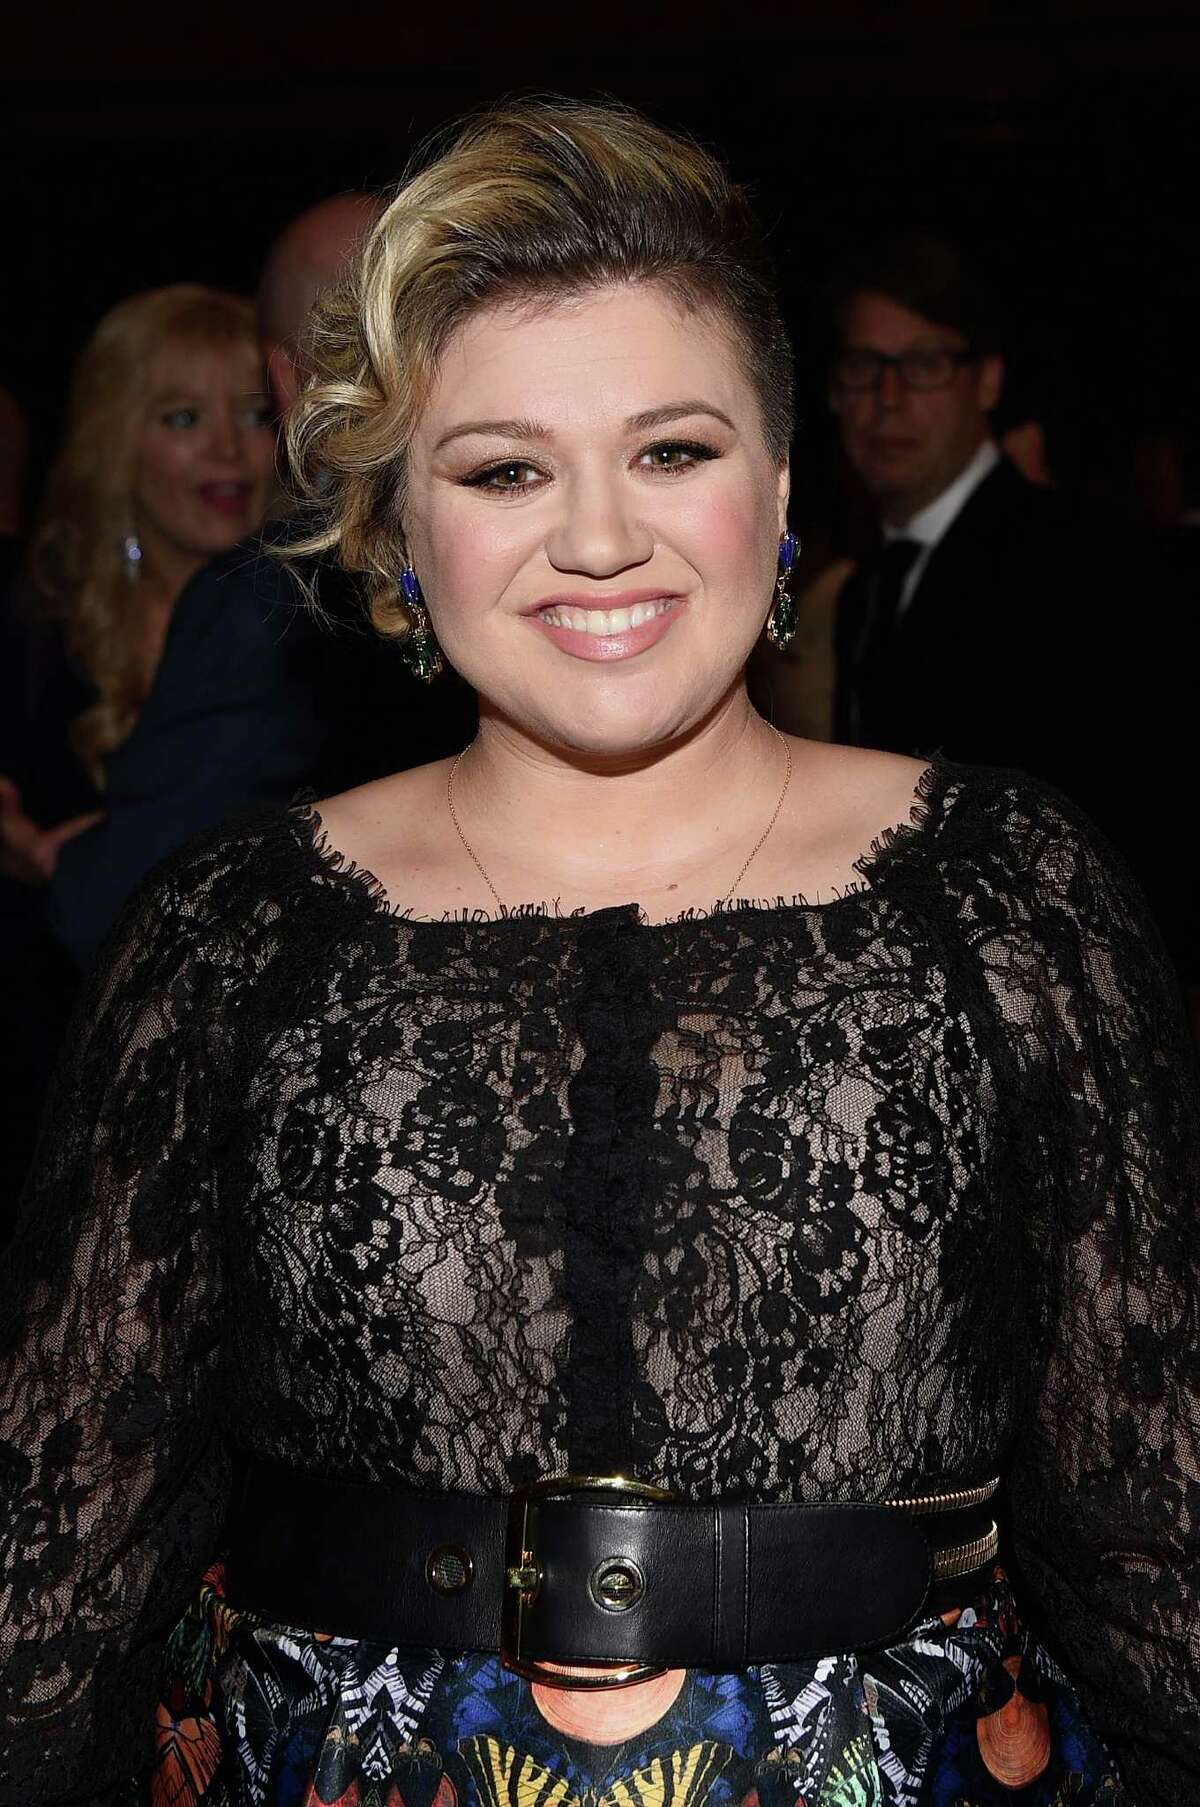 Kelly Clarkson is one of the show's true superstars. She released seventh studio album